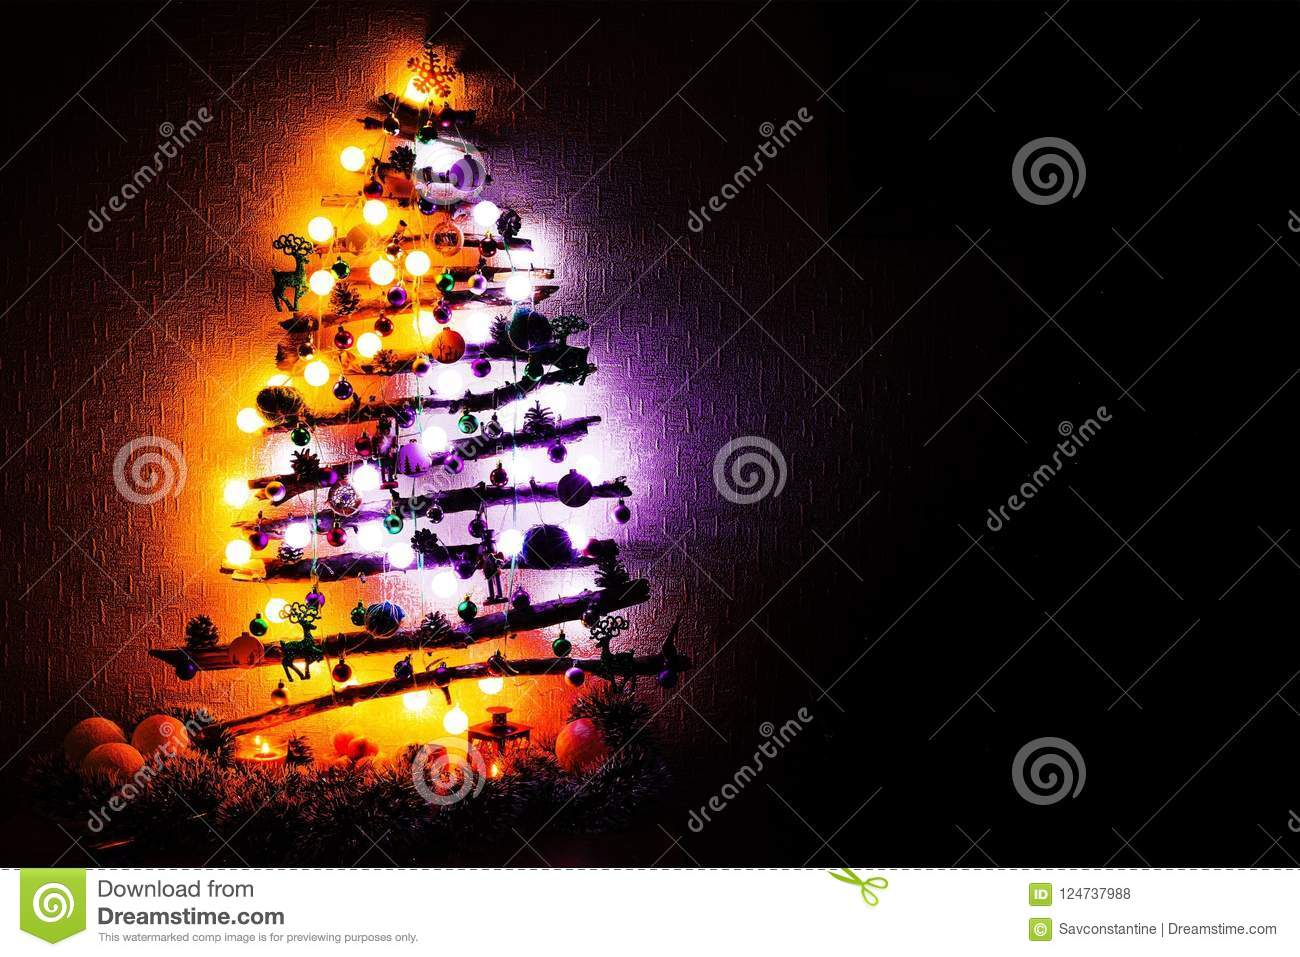 christmas tree made from twigs and sticks with purple and orange lights at night copy space